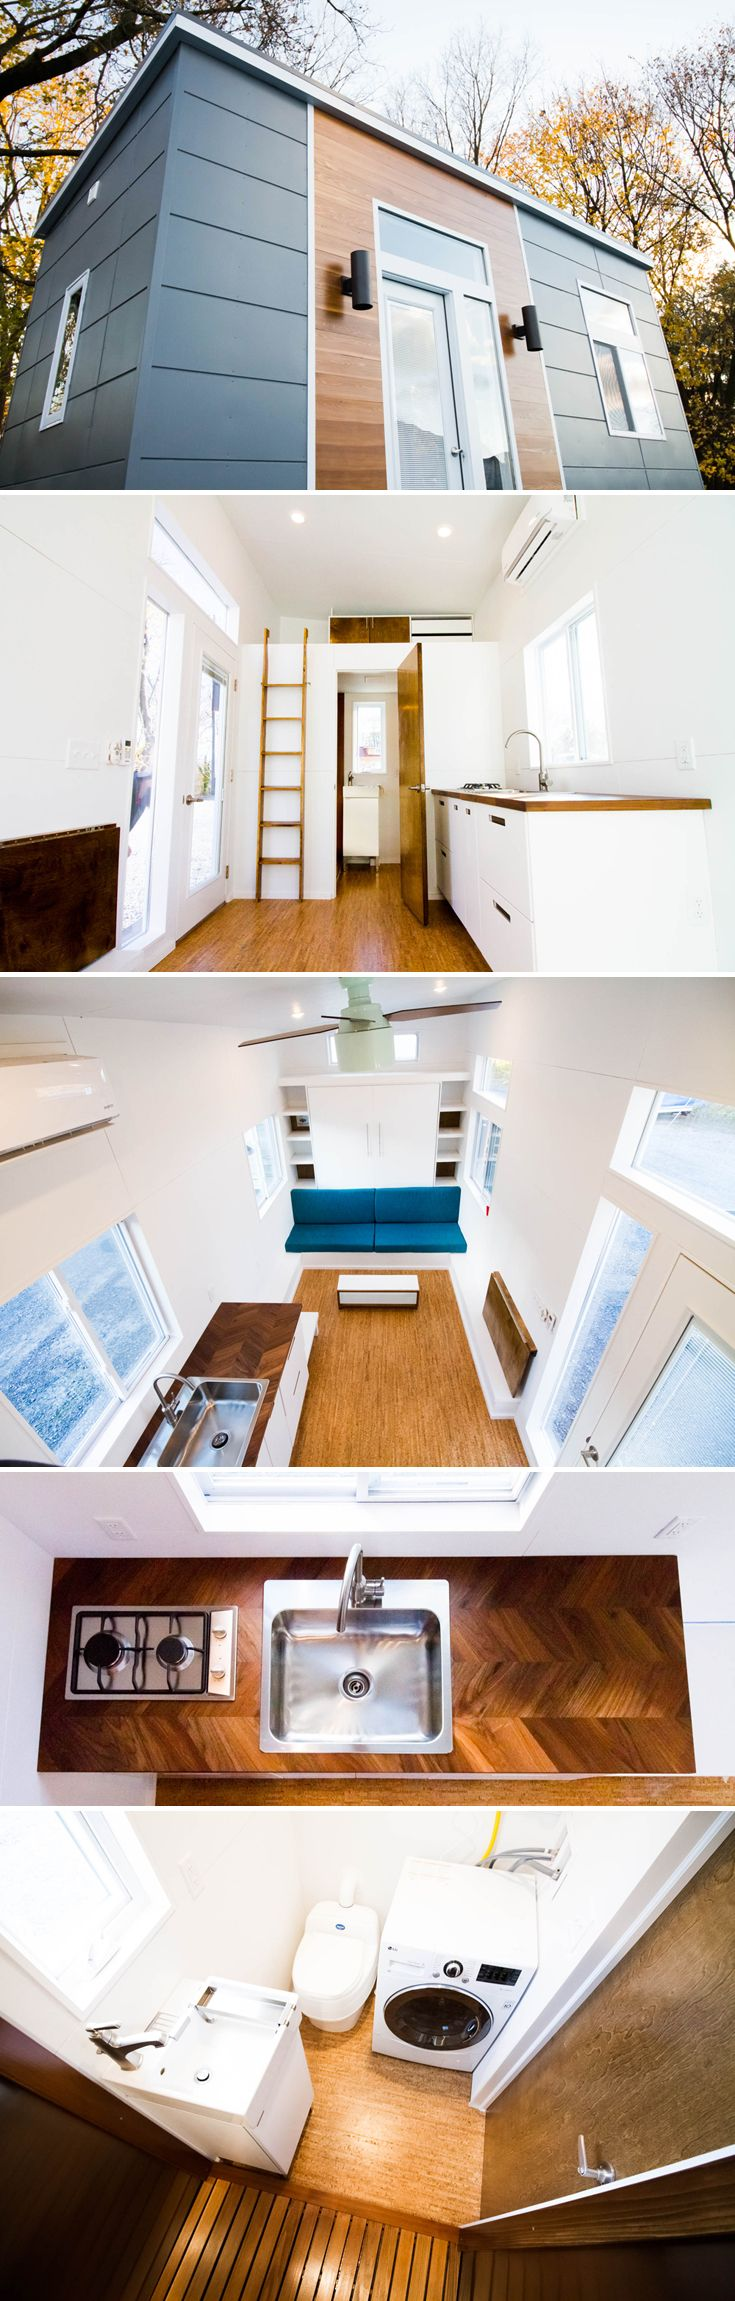 best 25+ mobile house ideas on pinterest | tiny love mobile, the